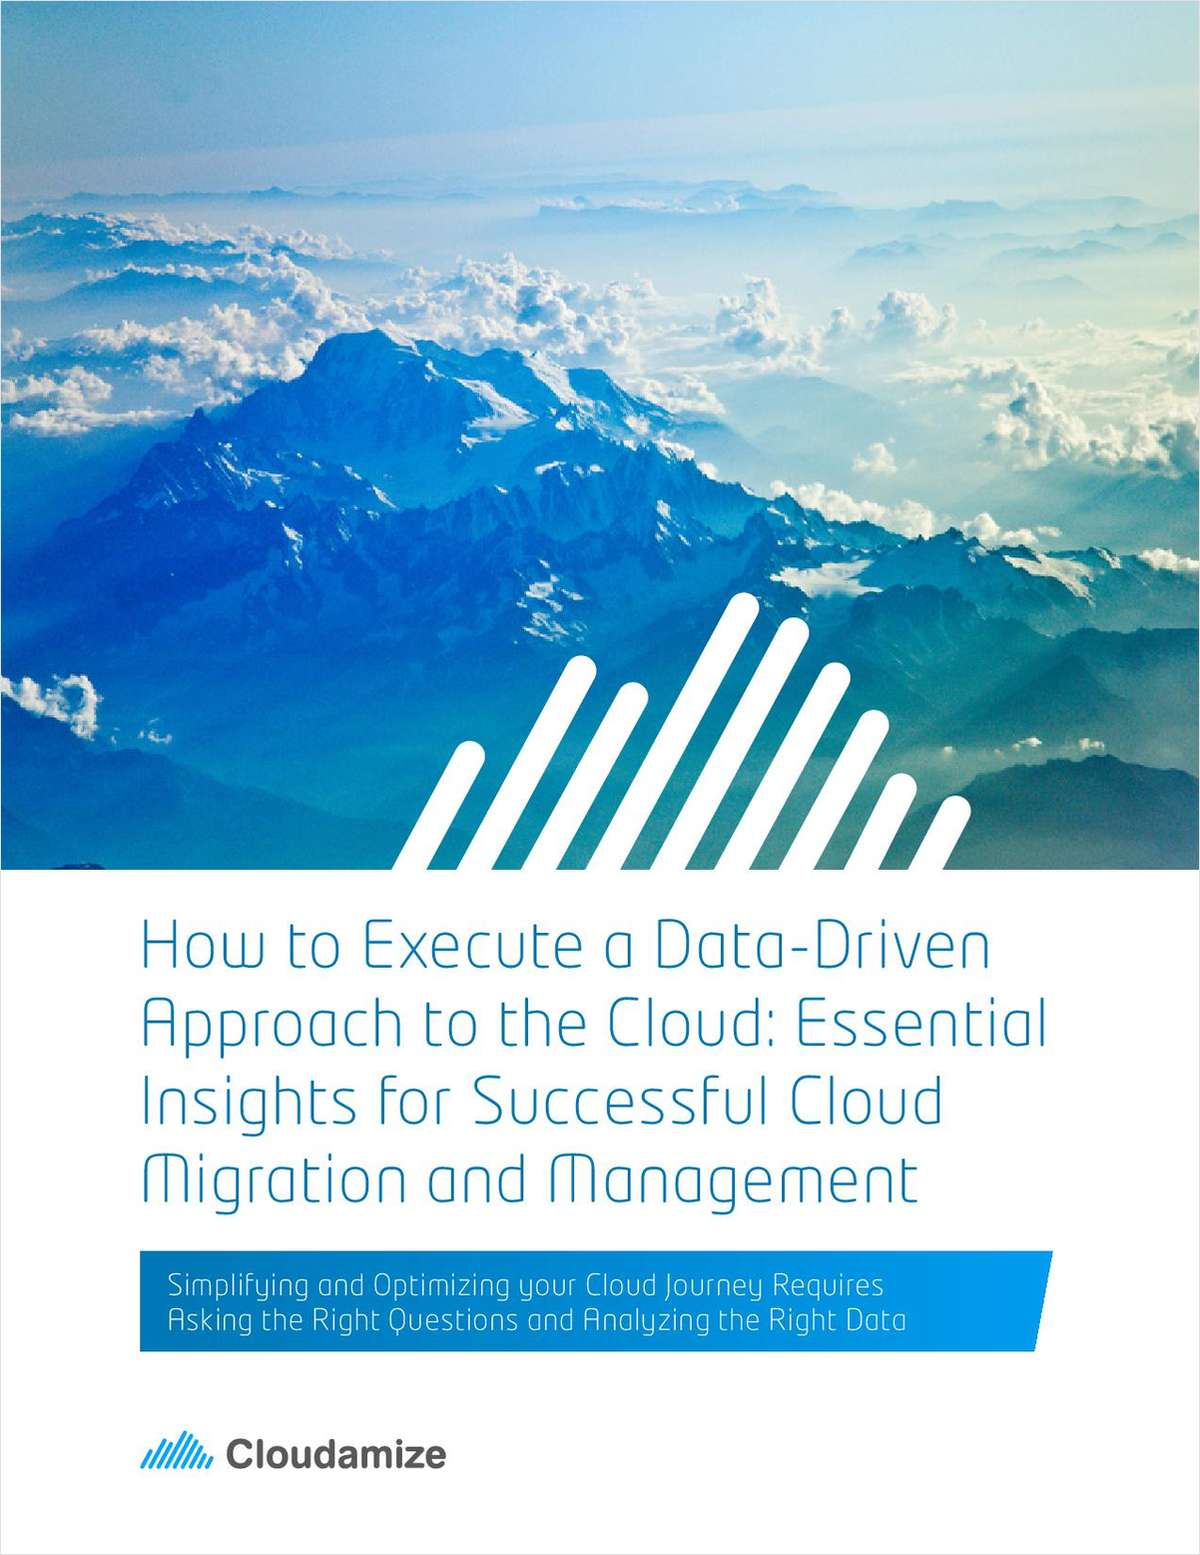 How to Execute a Data-Driven Approach to the Cloud